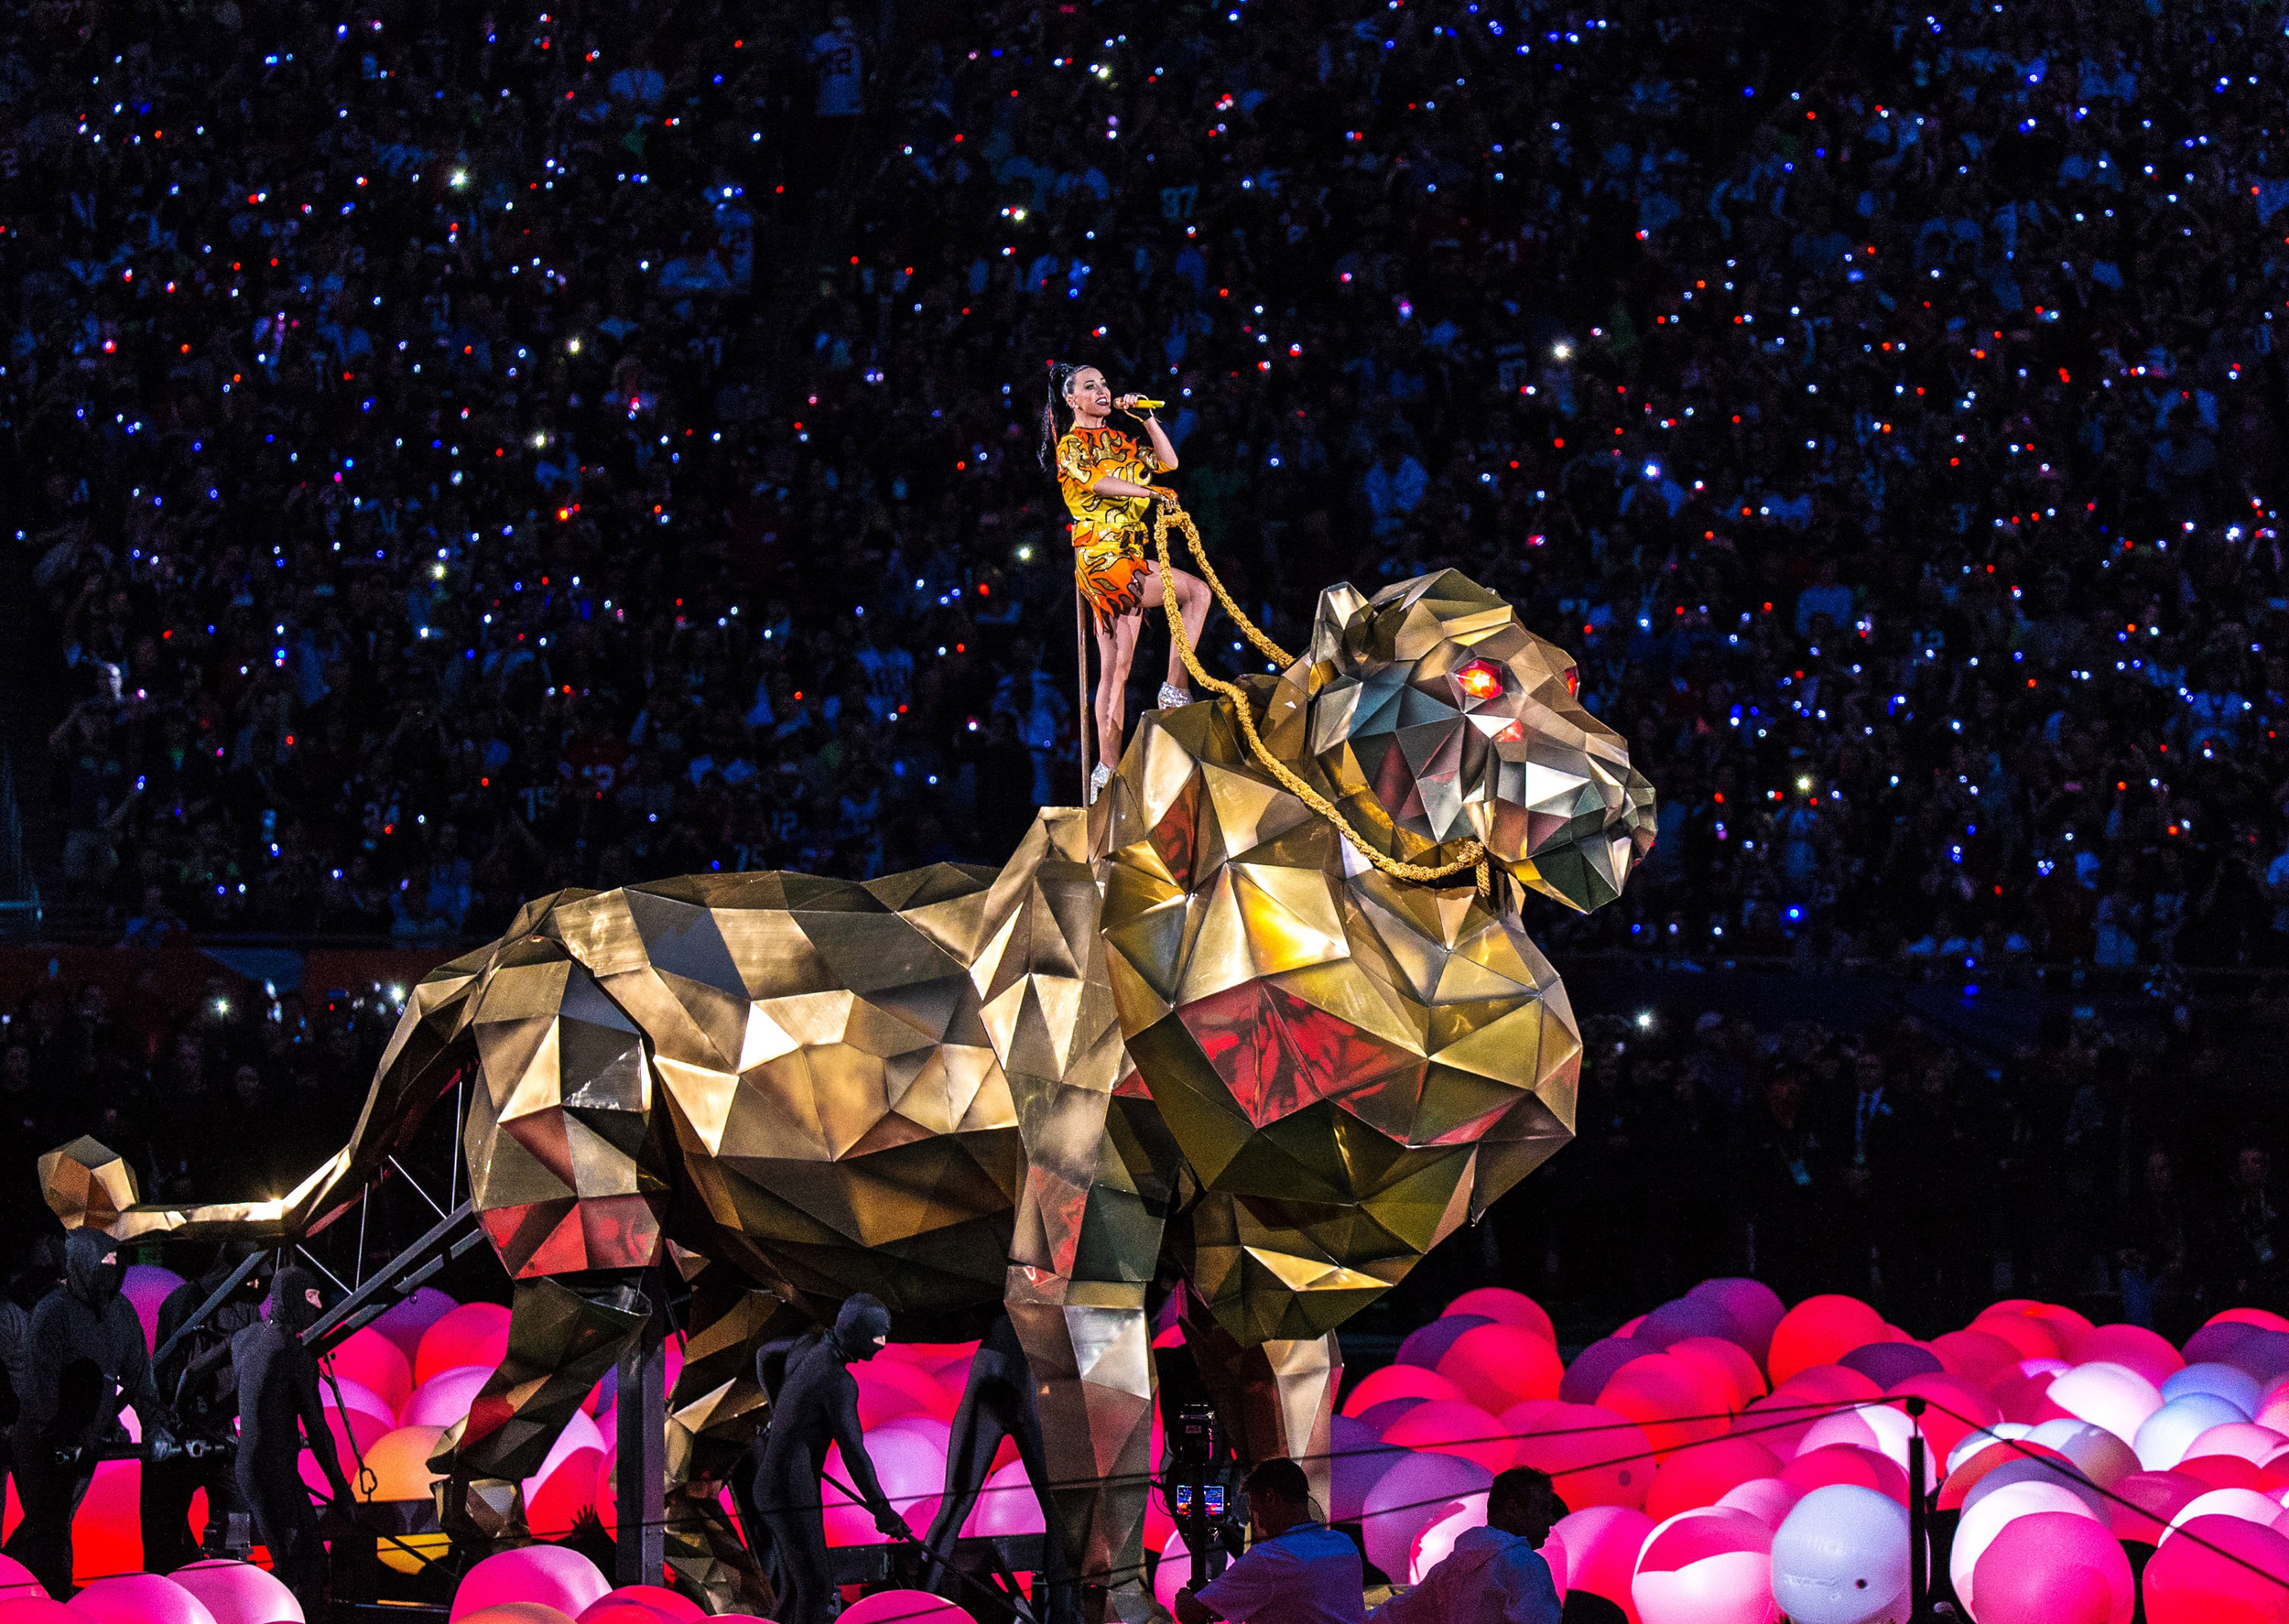 Katy perry takes the reins on super bowl halftime show nbc news